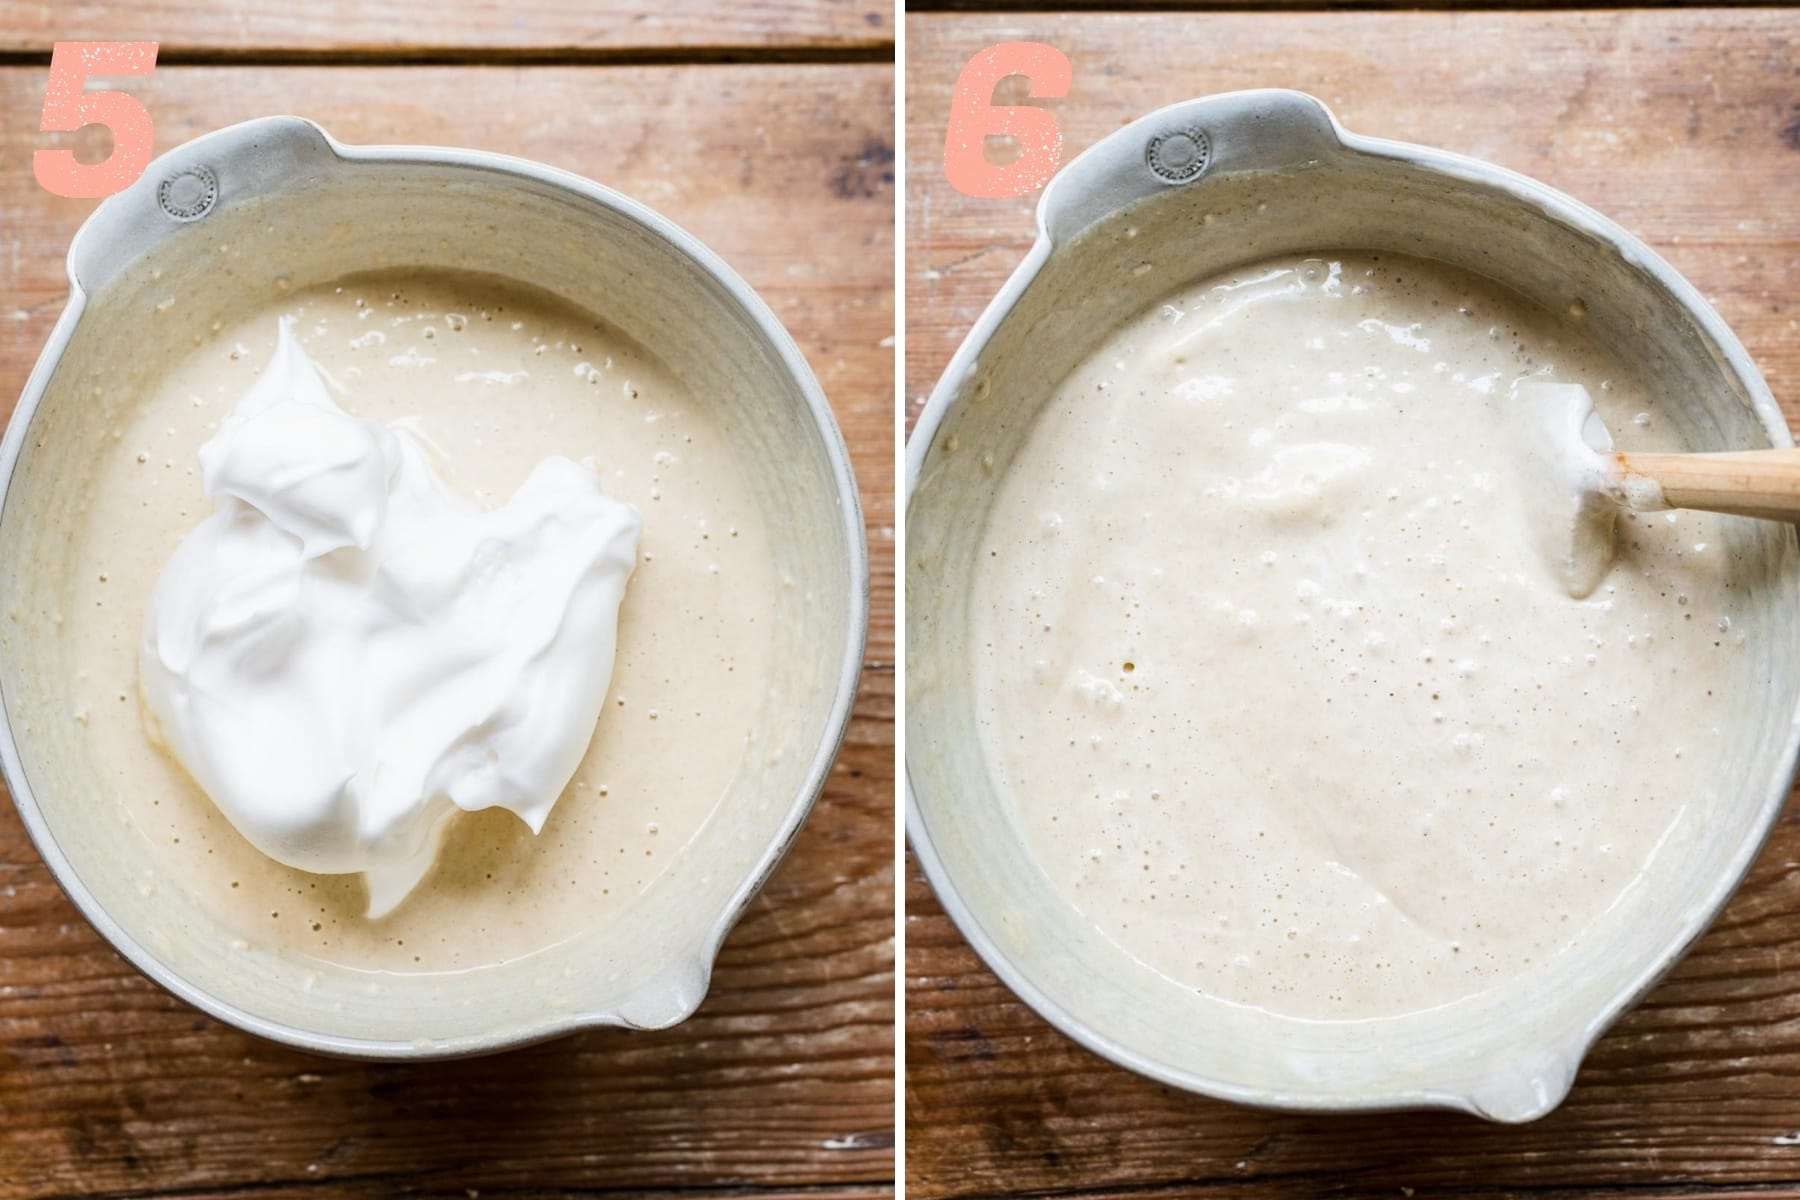 before and after folding aquafaba into vegan waffle batter.